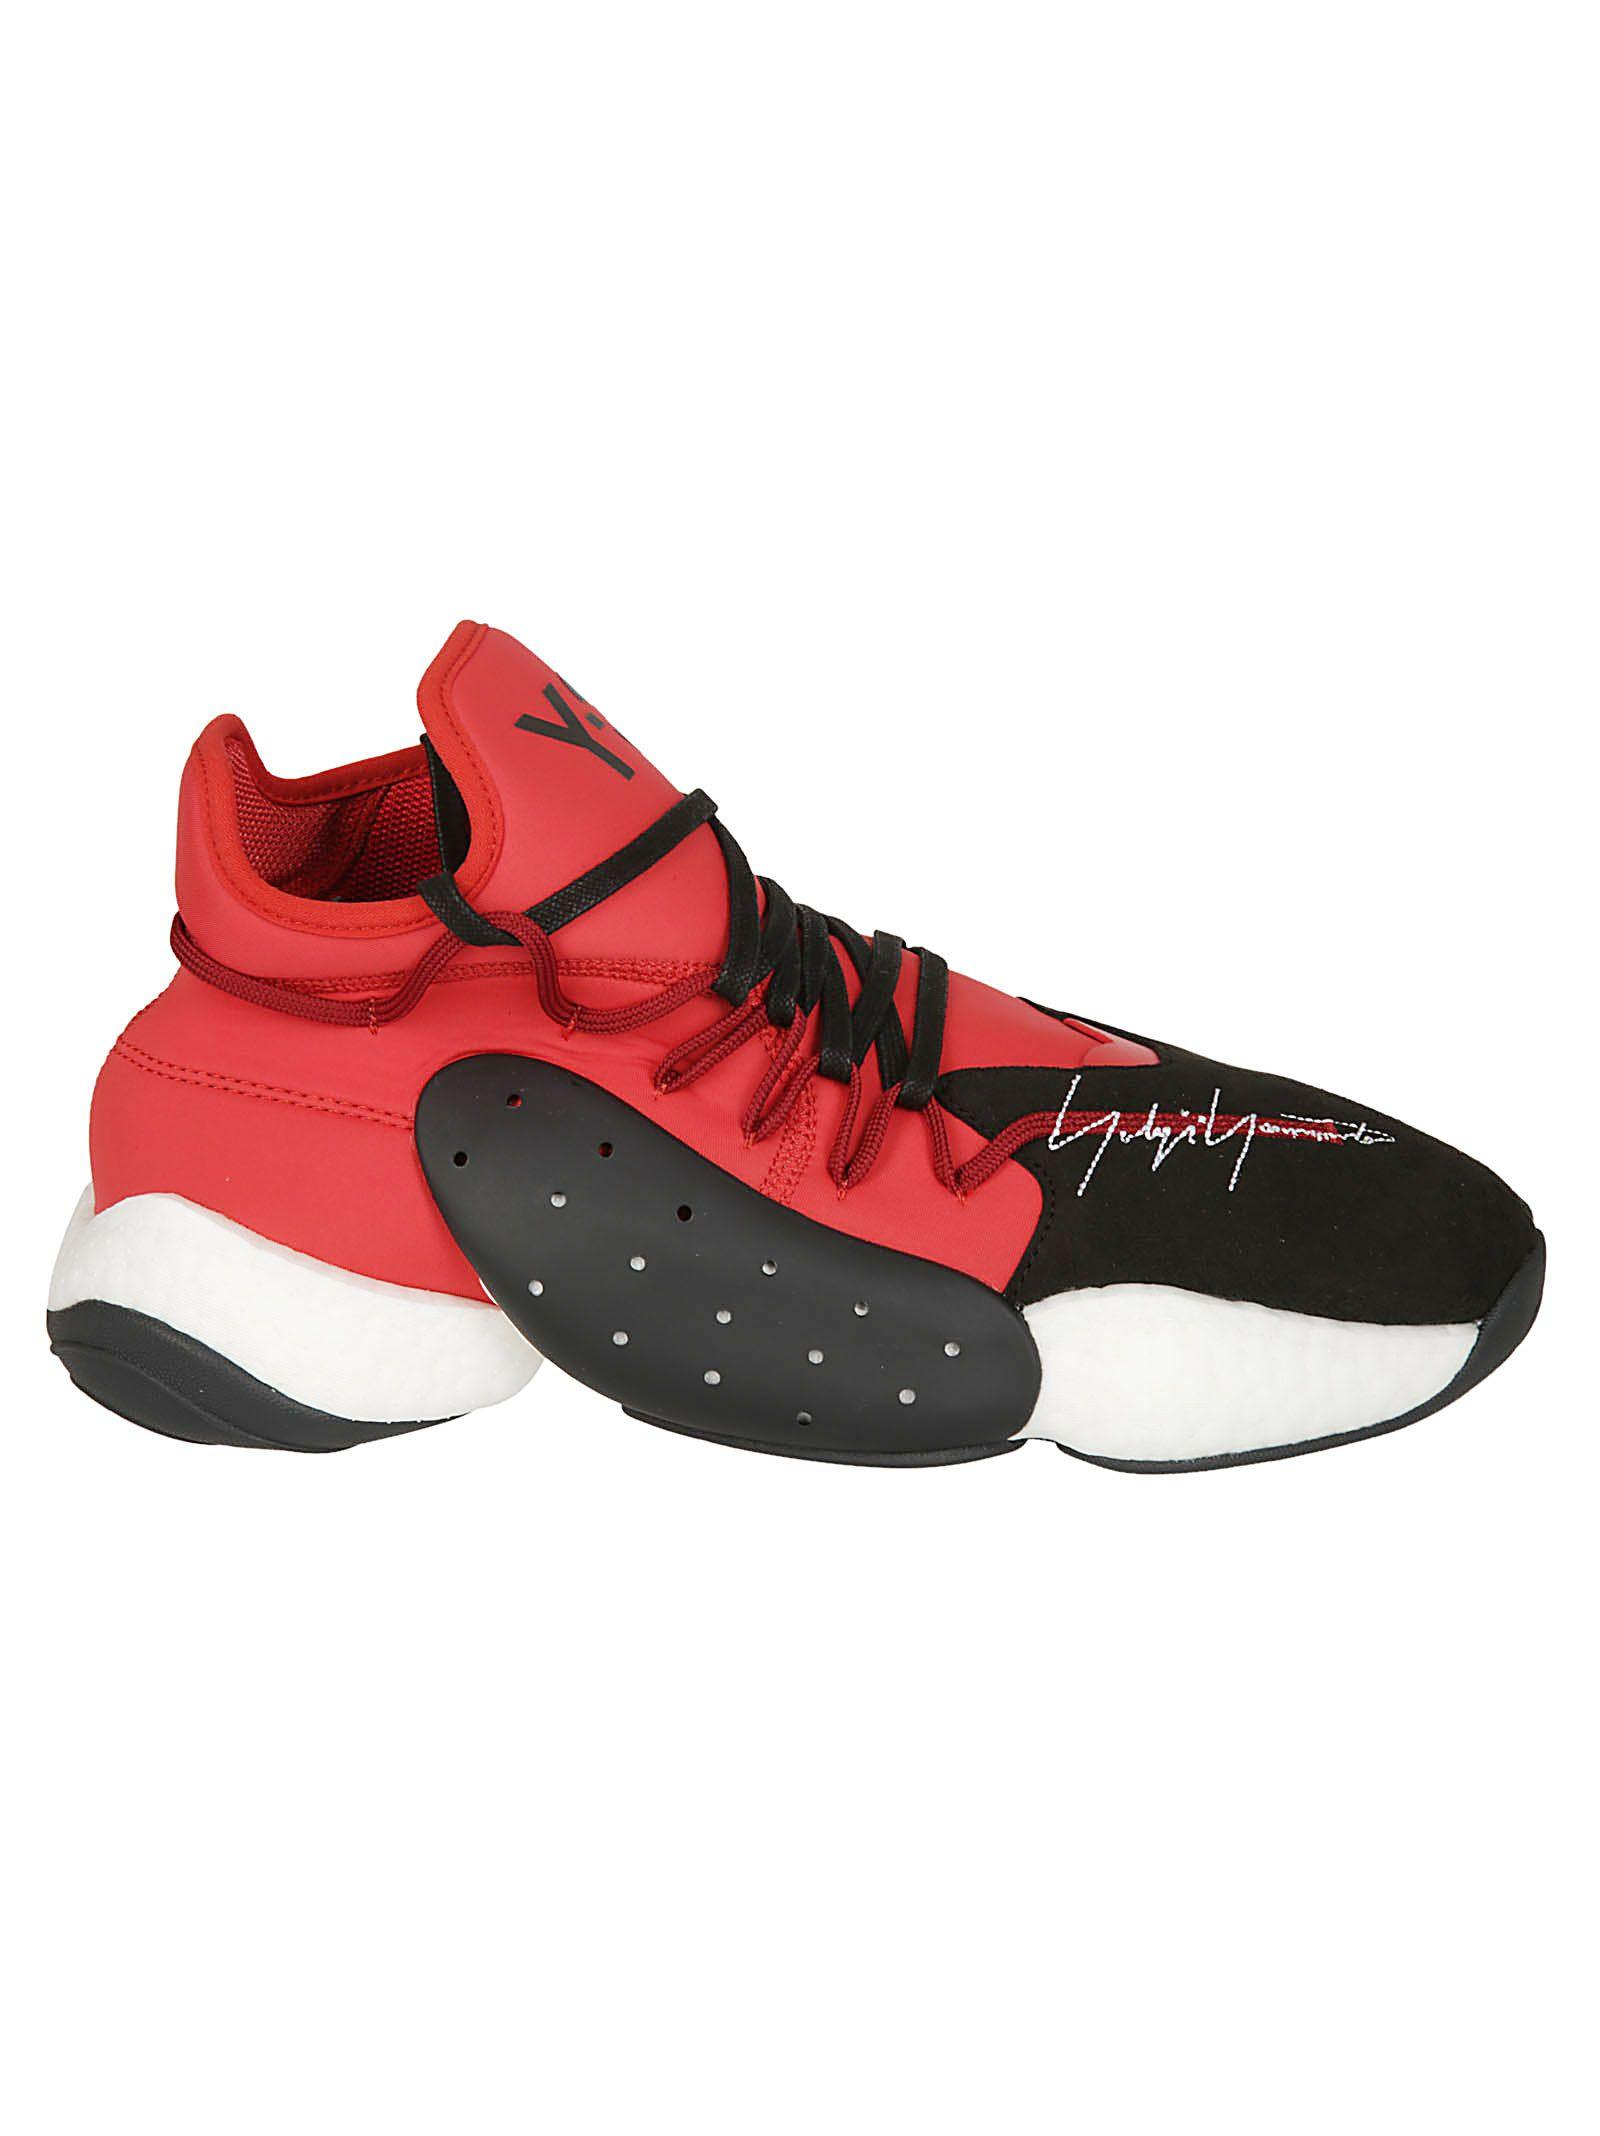 c1da8b6e54f Y-3 Men s Byw Leather Textile Basketball Trainer Sneakers